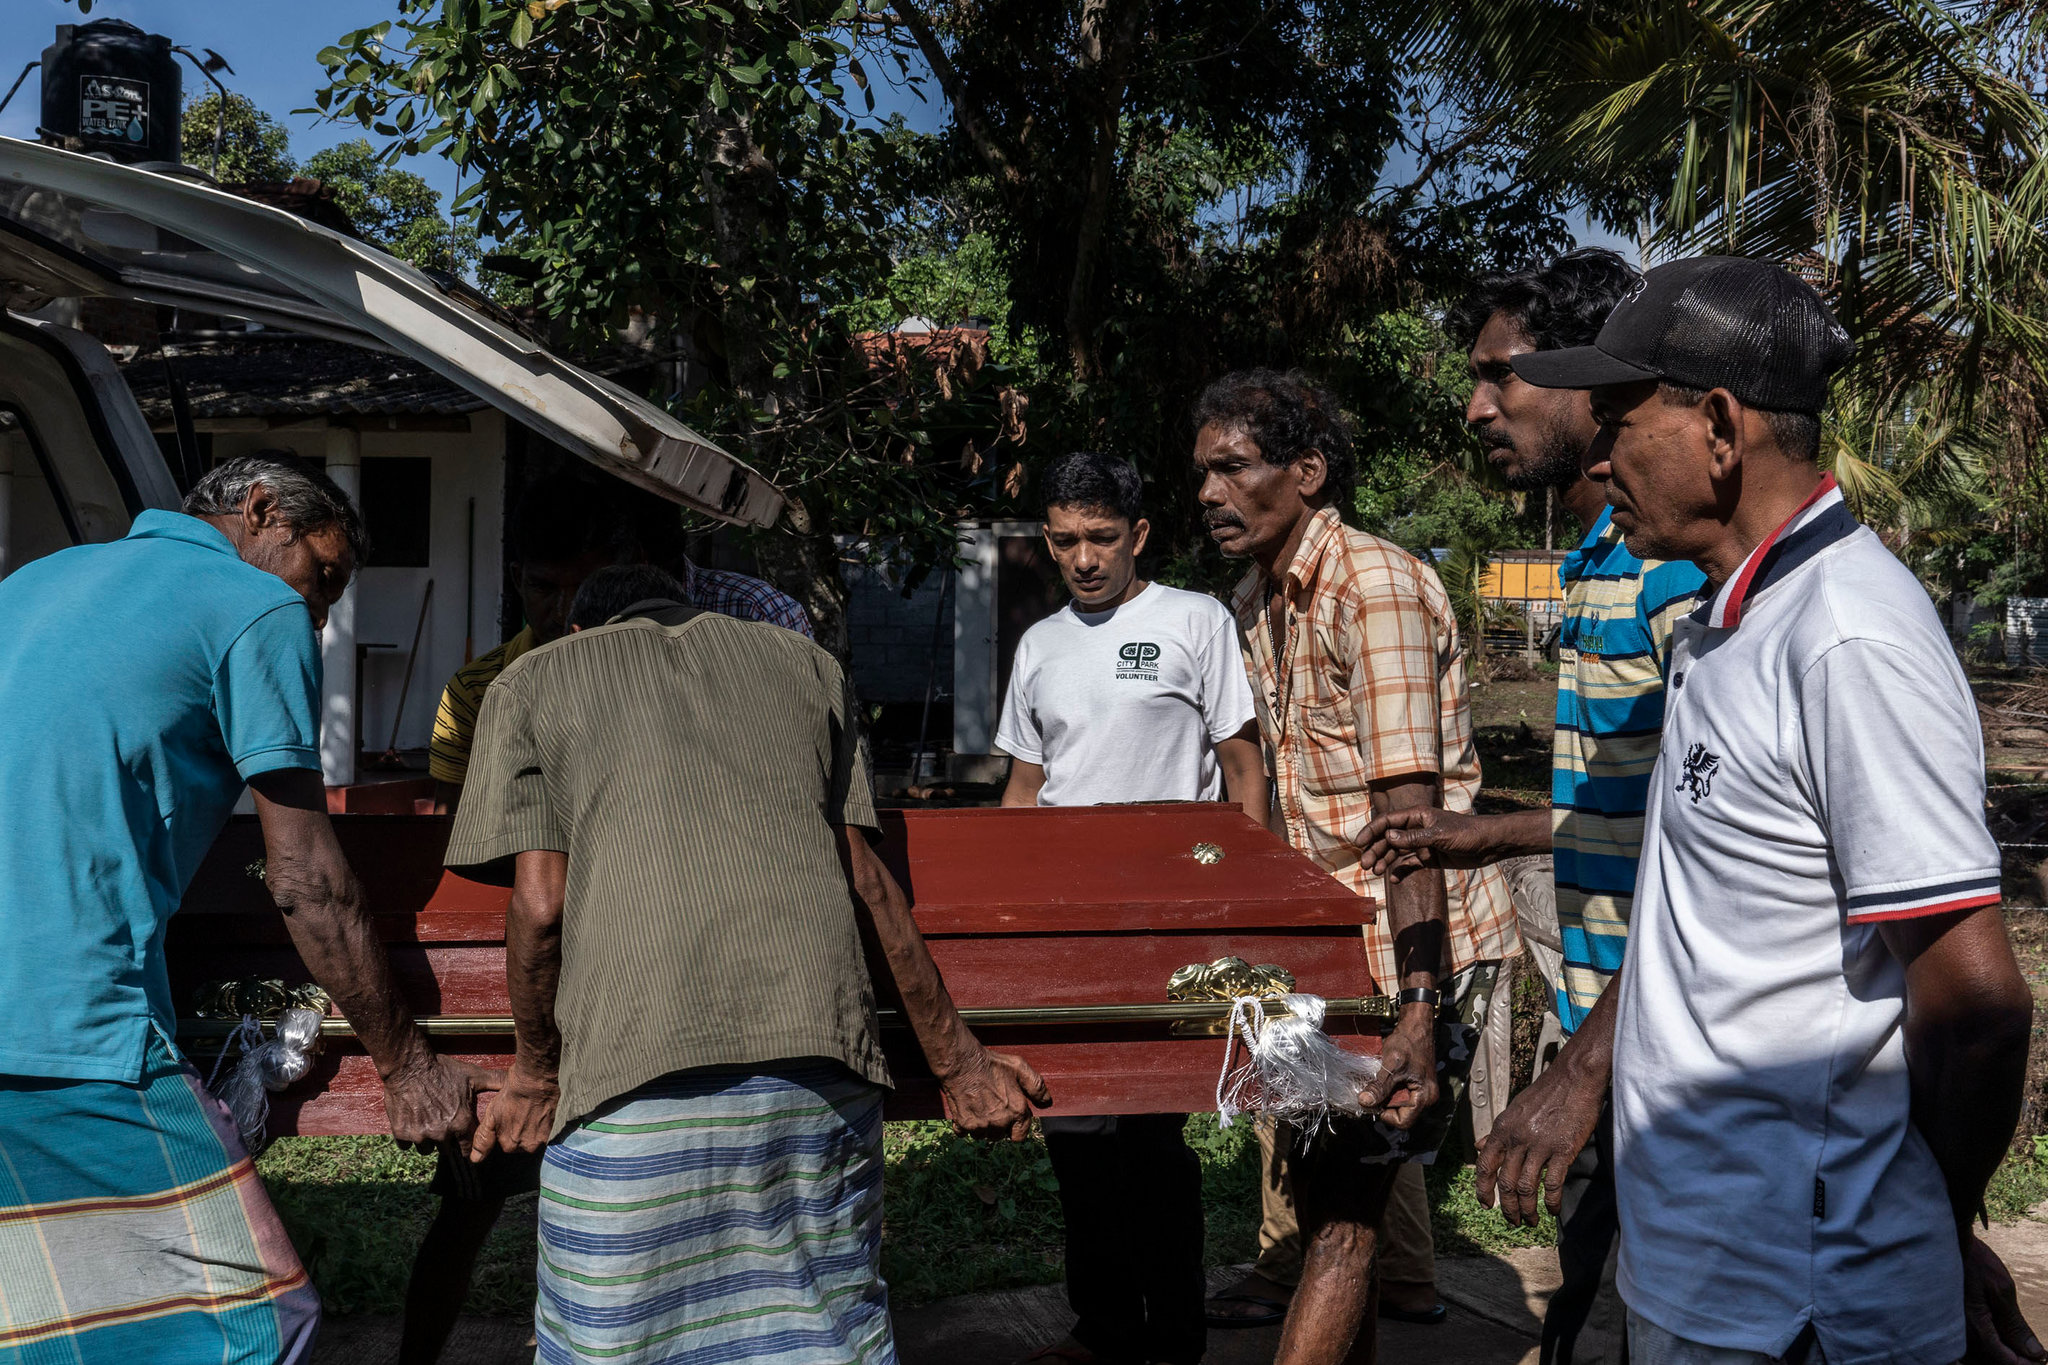 Relatives unloading the coffin on Monday of Sneha Savindi, 11, who was killed in a suicide bombing at St. Sebastian's Church in Negombo. Credit Adam Dean for The New York Times